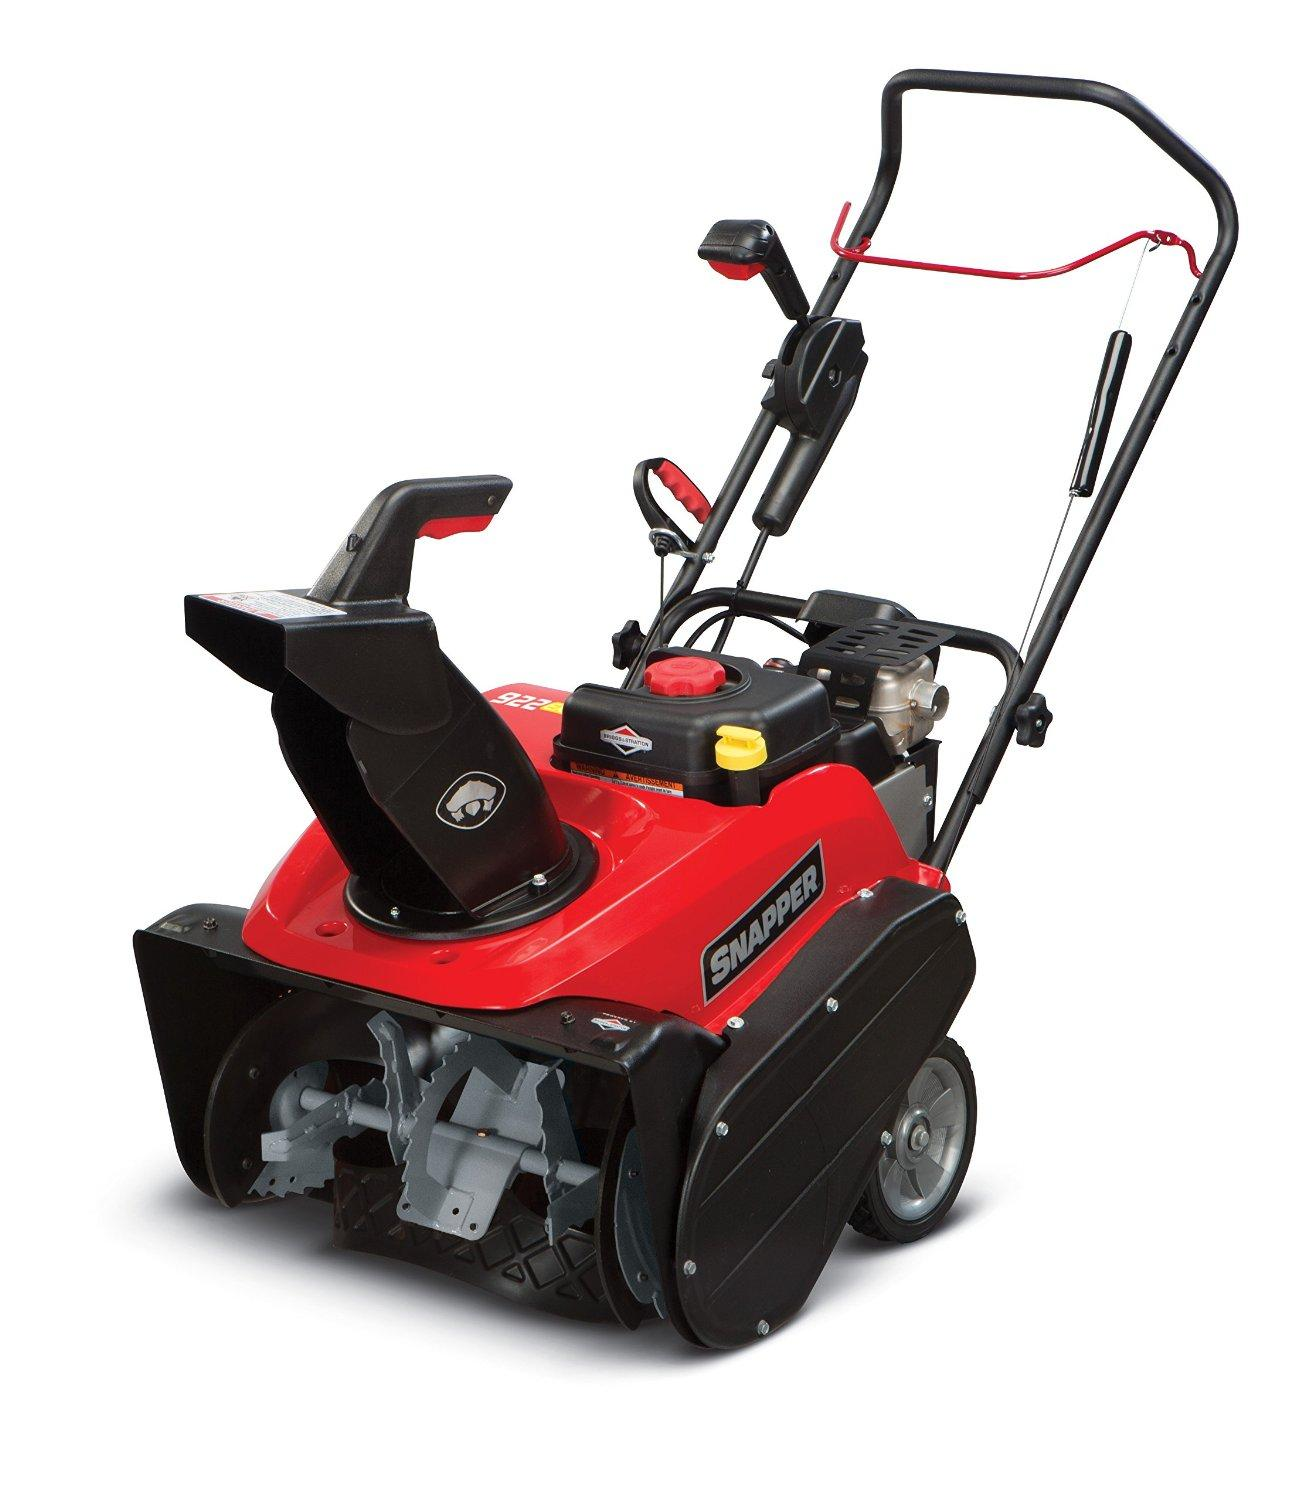 Amazon.com: Snapper 922EXD Single Stage Snow Blower with ...